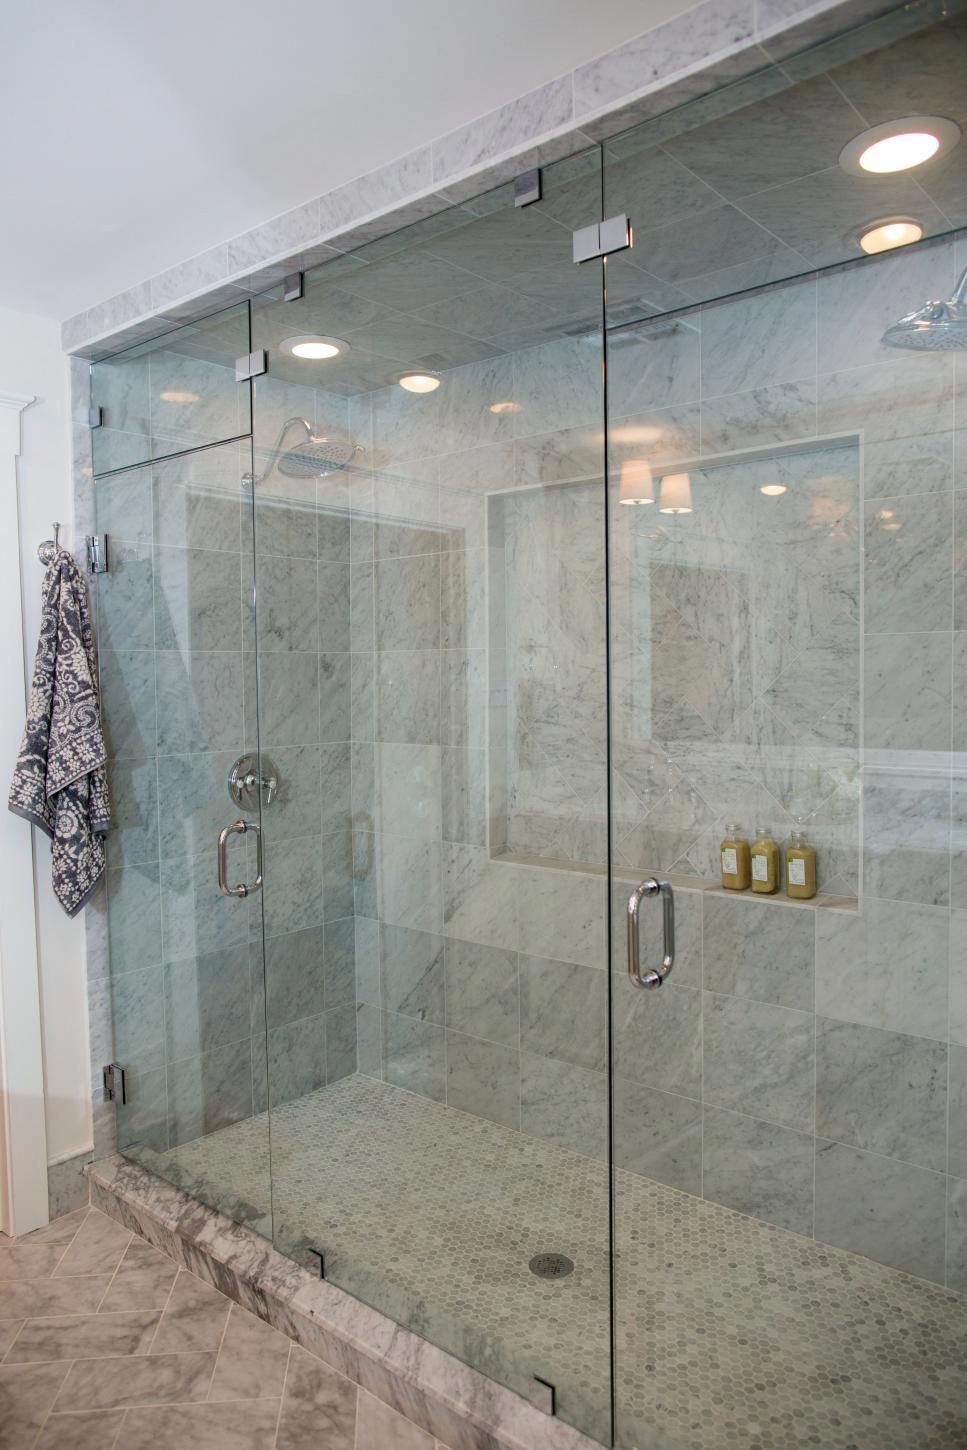 A Close Up Of The Shower In The Newly Remodeled Master Bathroom In